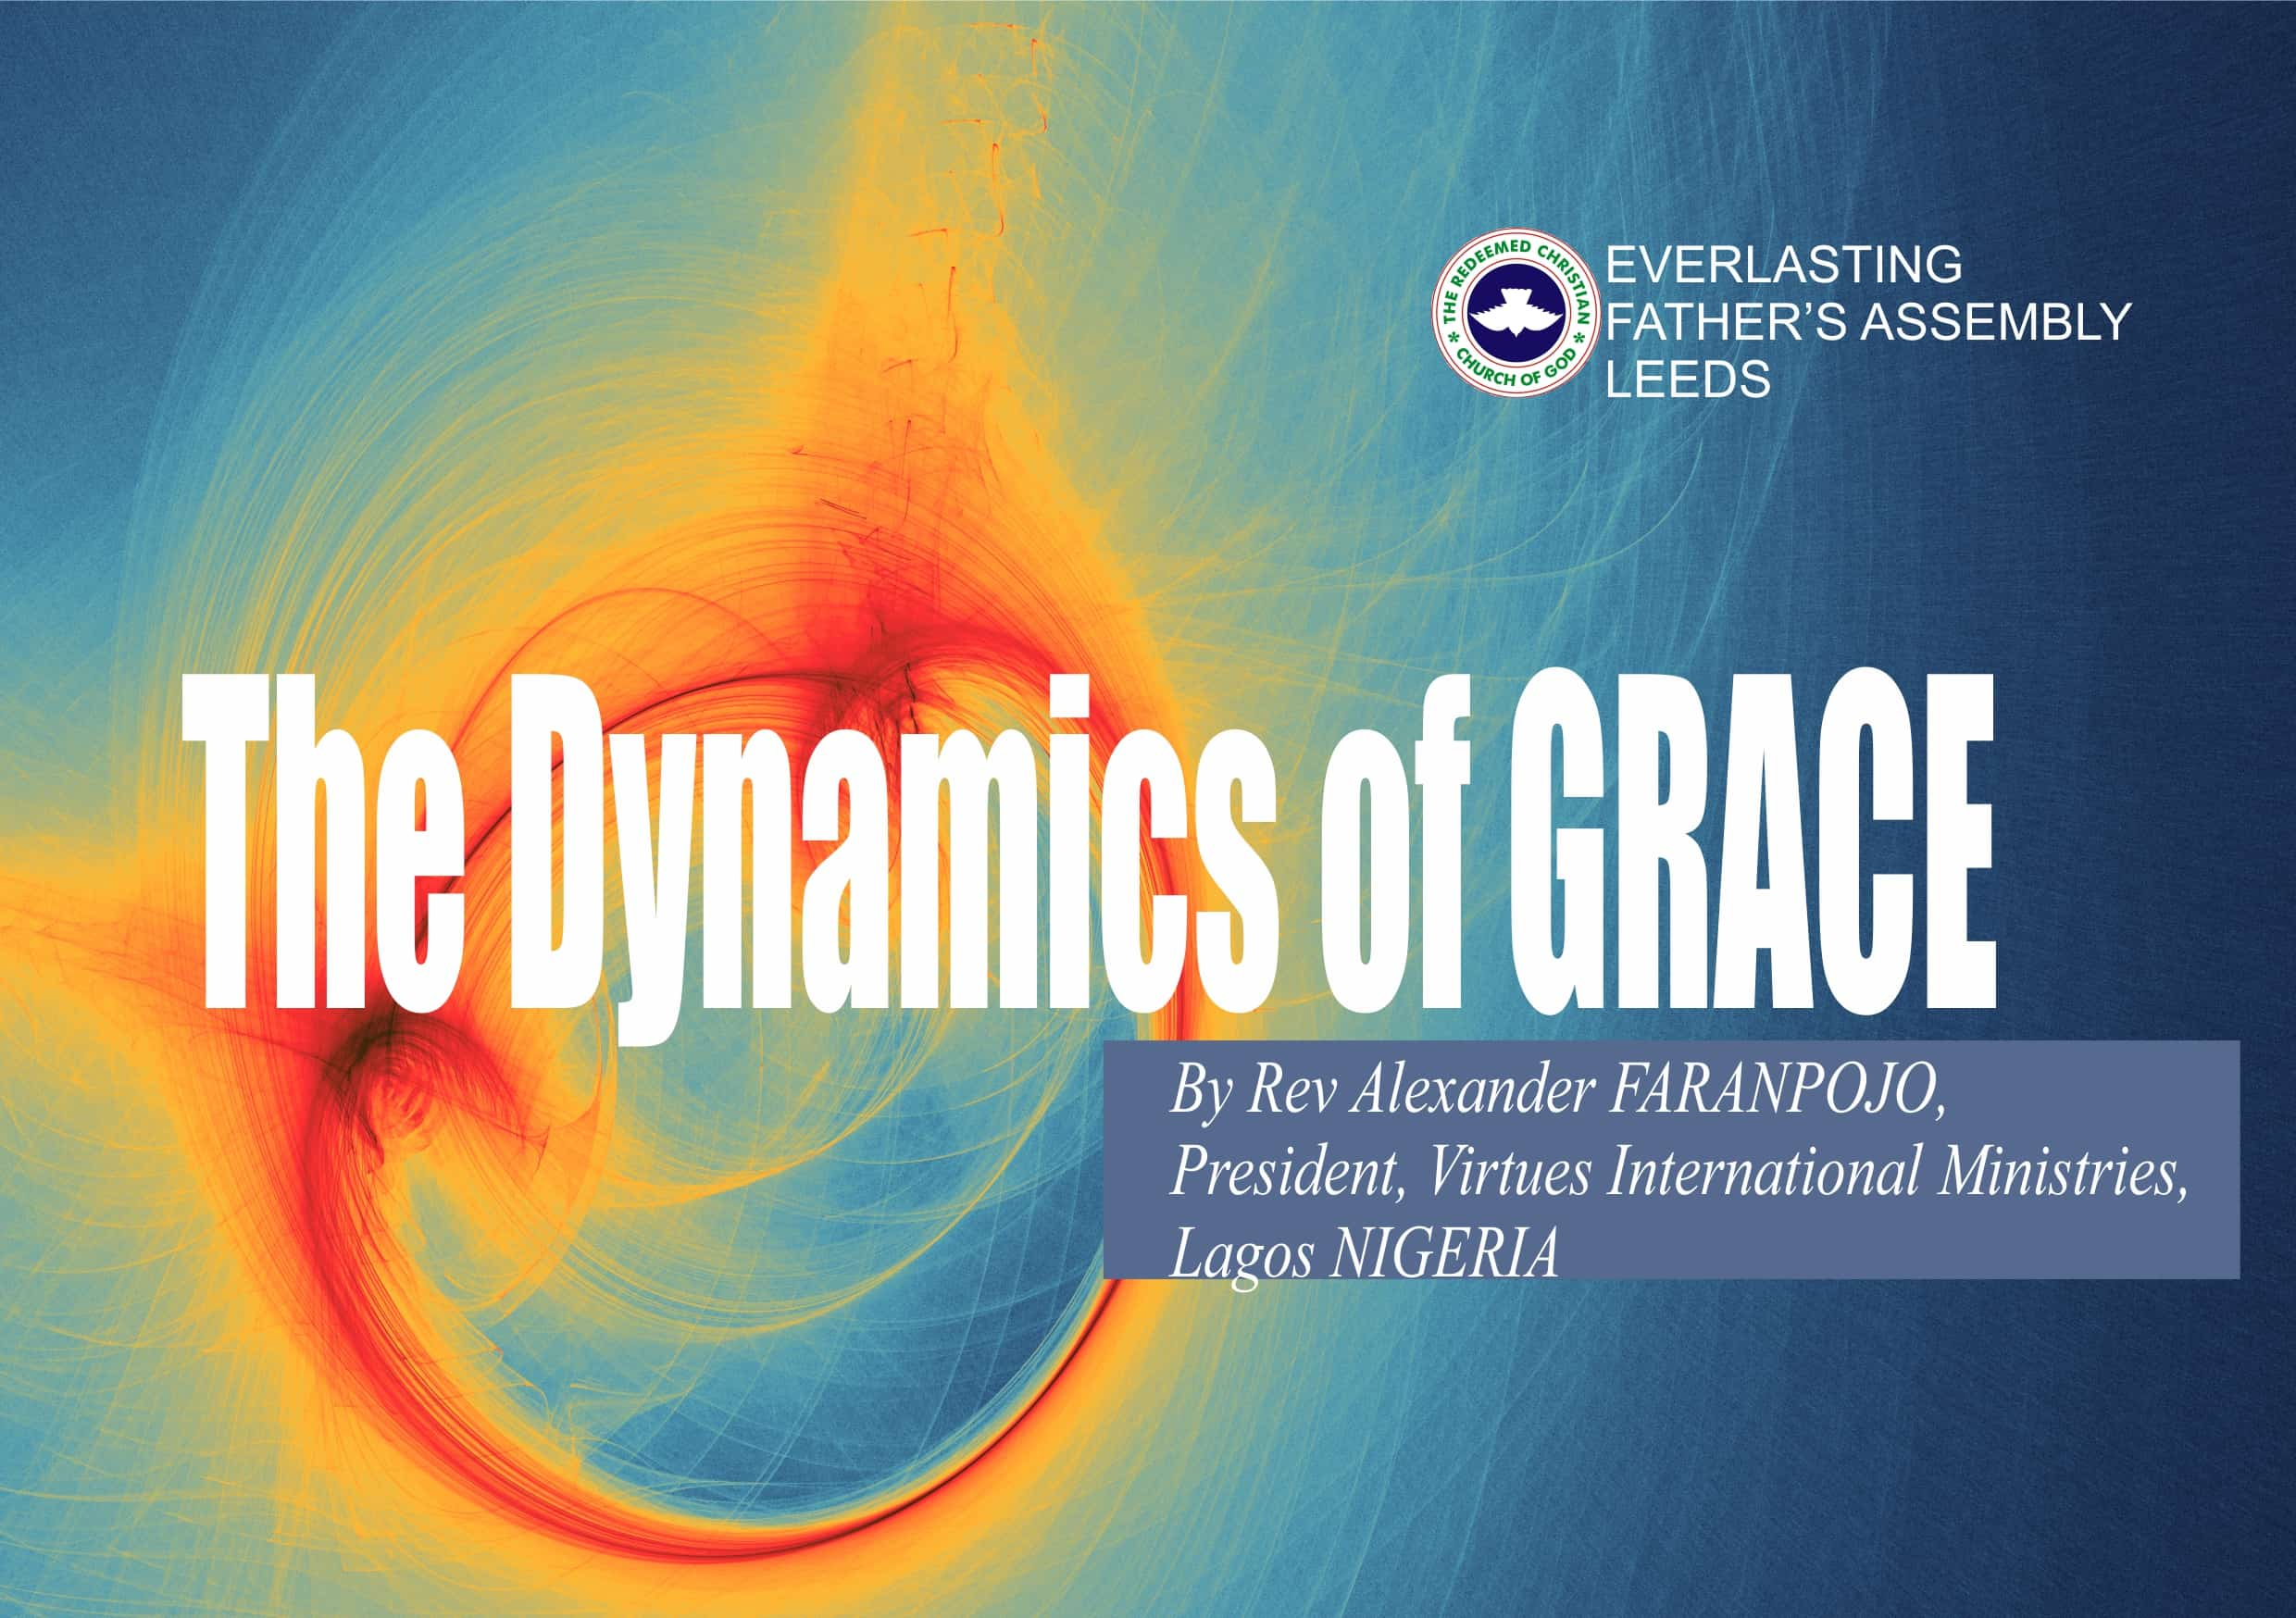 The Dynamics of GRACE, by Rev Alexander Faranpojo